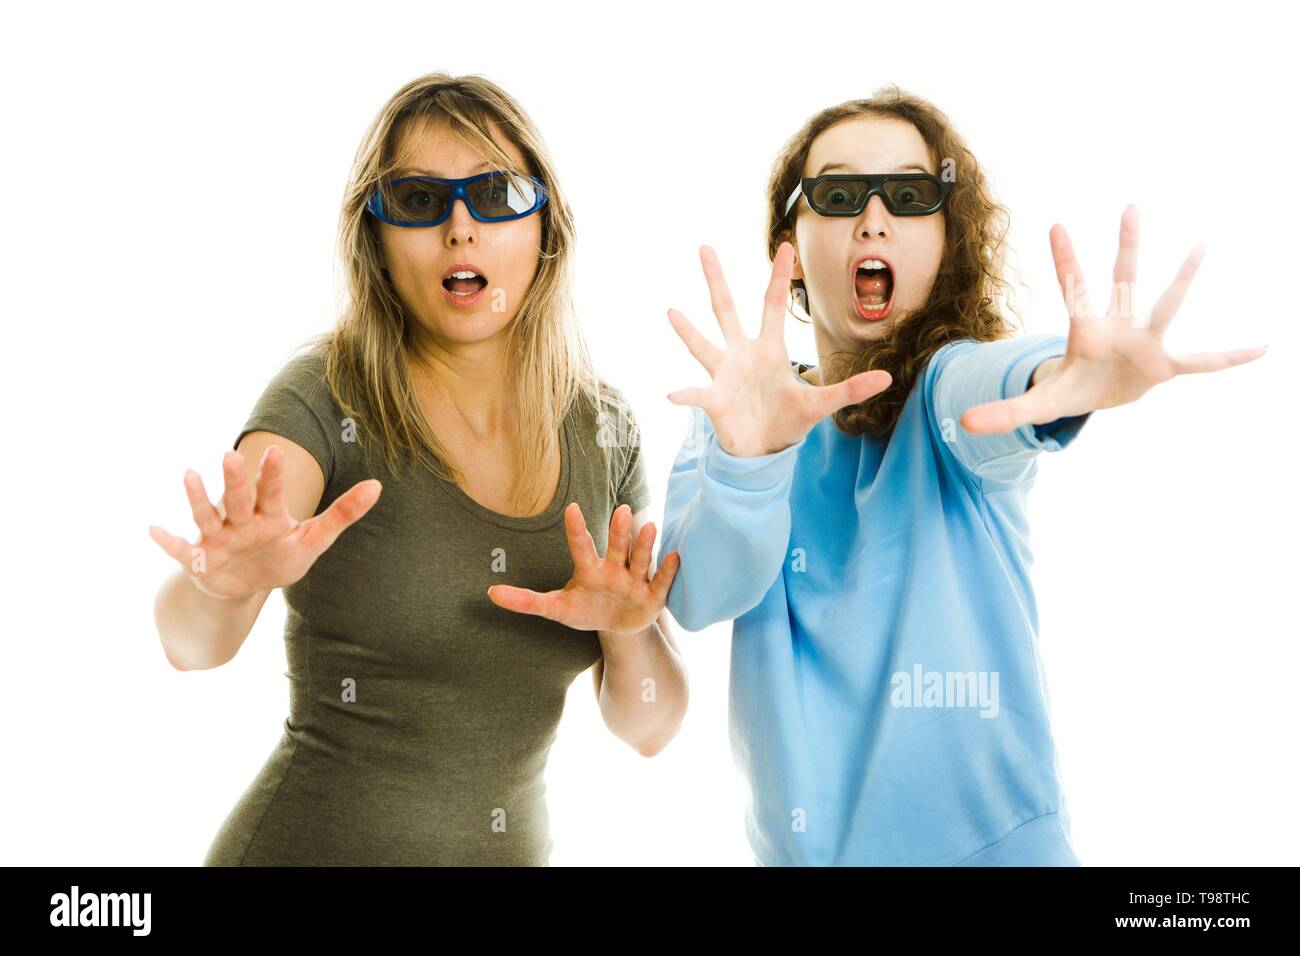 Amazed woman and girl in cinema wearing 3D glasses experiencing 5D cinema effect - scared watching performance - gestures of astonishment - concept on - Stock Image